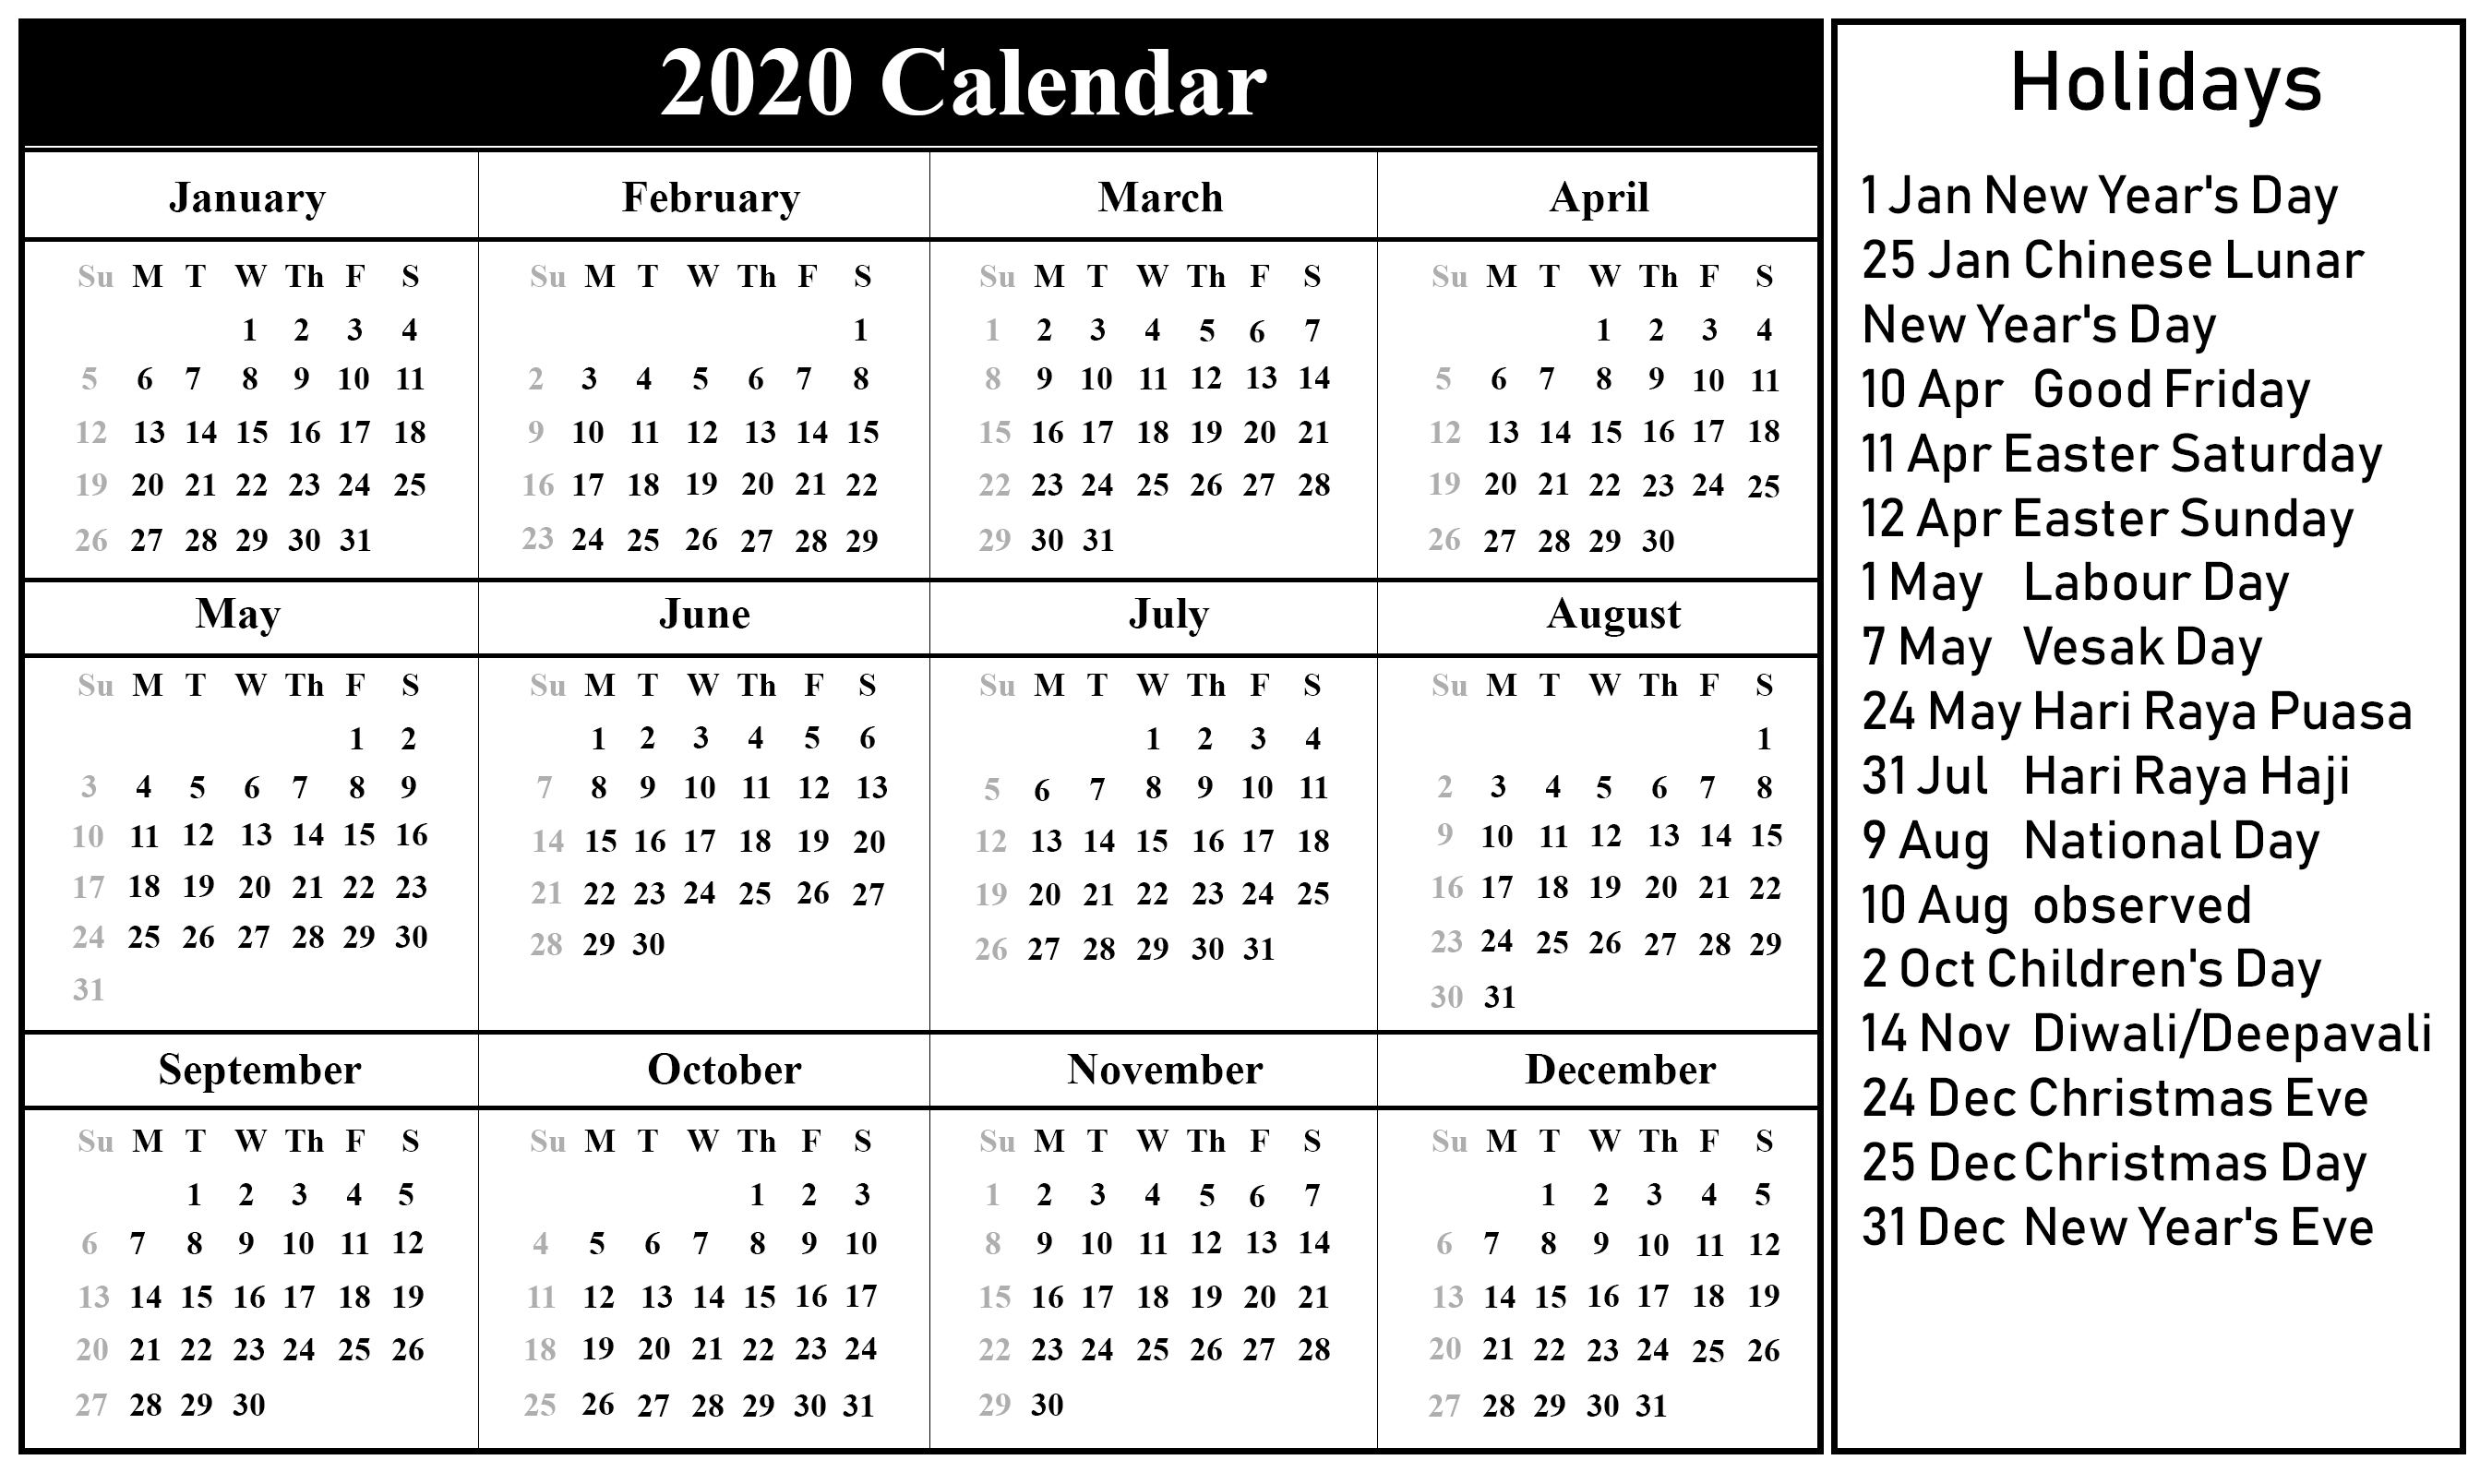 Free Printable 2020 Monthly Calendar With Holidays Word Pdf  Free Monthly Calendar Print Out 2020 With Holidays